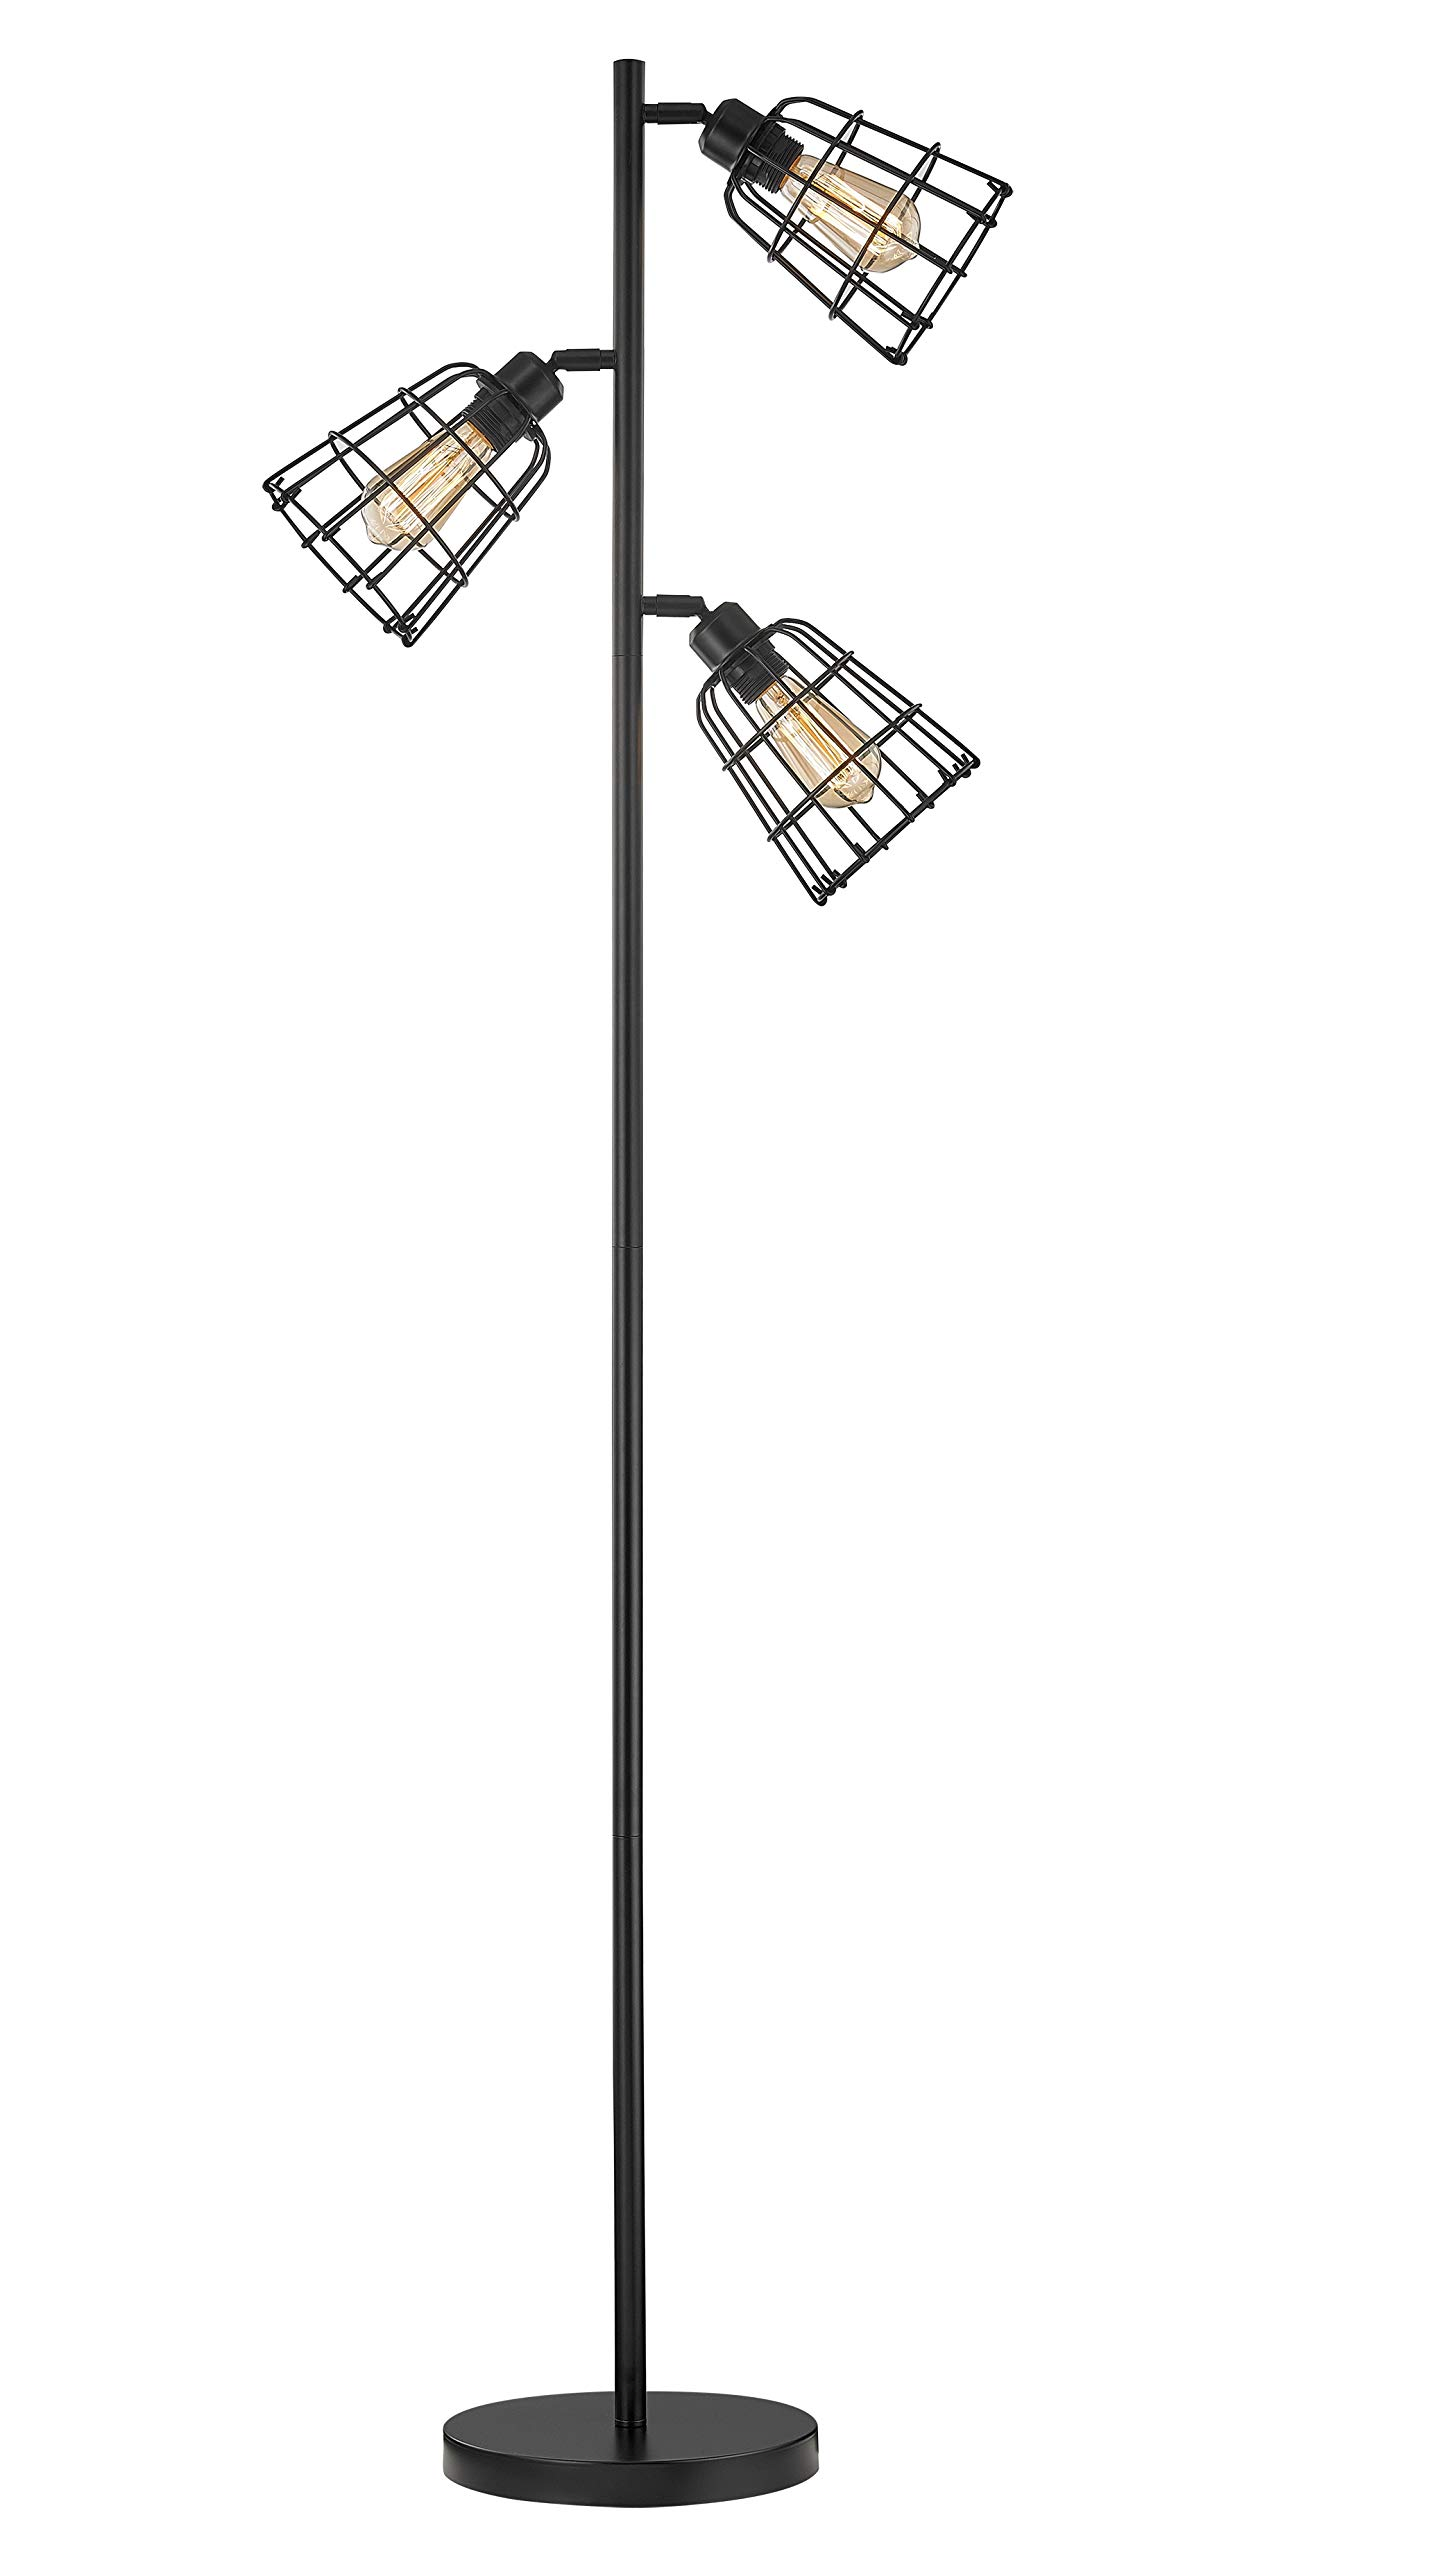 Modern Floor Lamp for Living Room Bright Lighting Tall Stand Up Lamp Farmhouse Rustic Industrial Black Tree Floor Lamps for Bedrooms, Office with Reading Light Standing Lamp by LeeZM